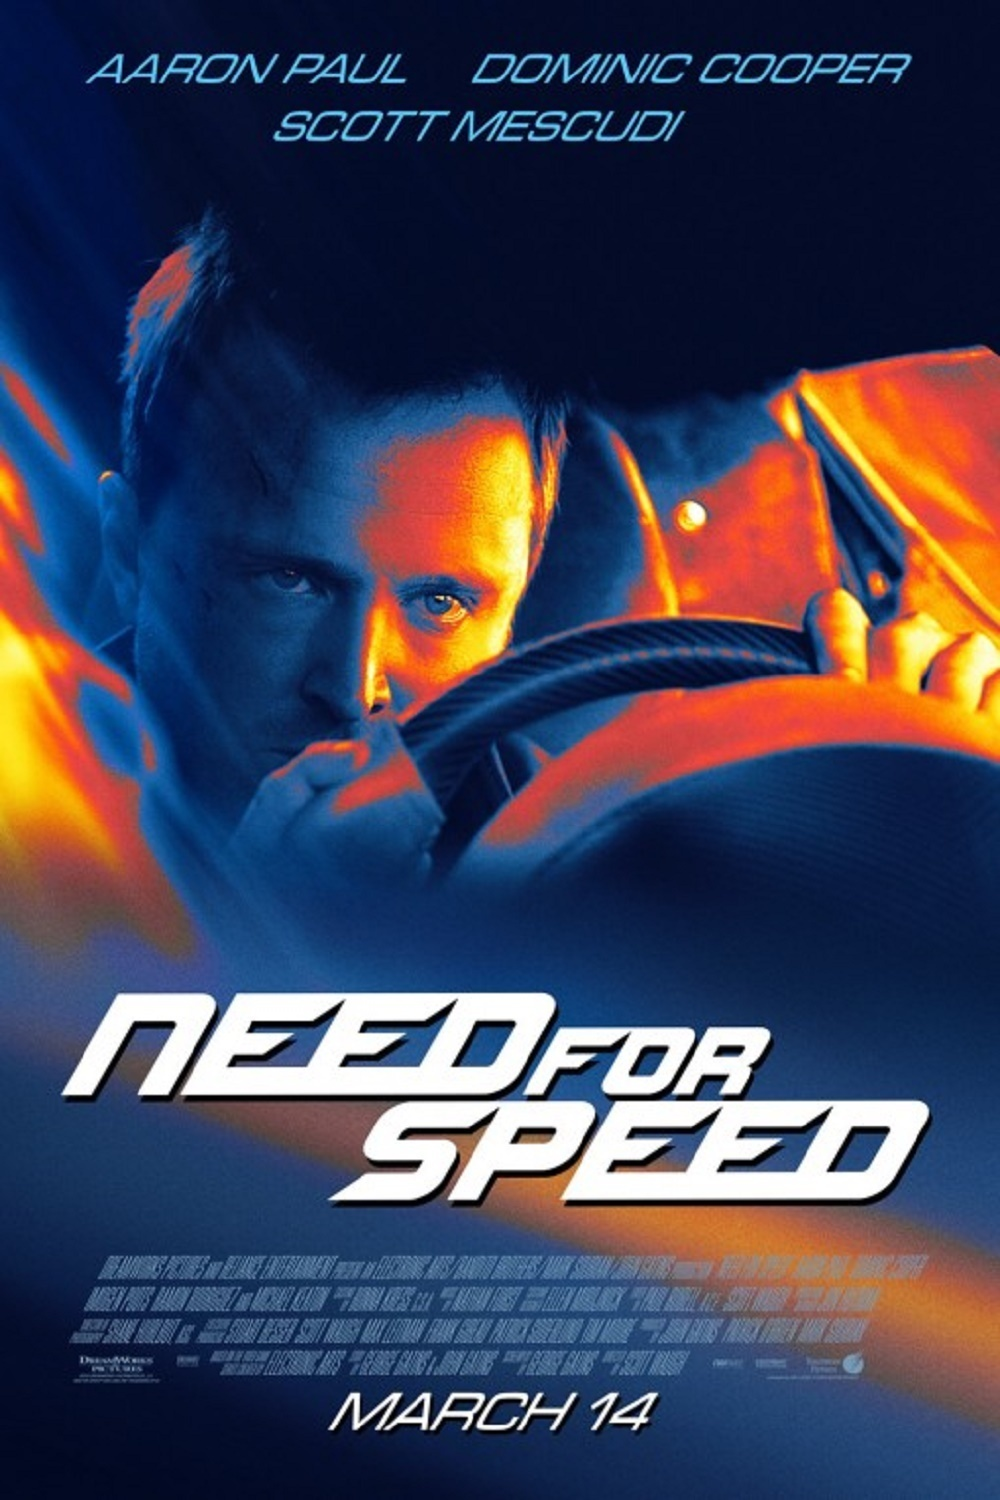 Need For Speed on New Nascar Trailer